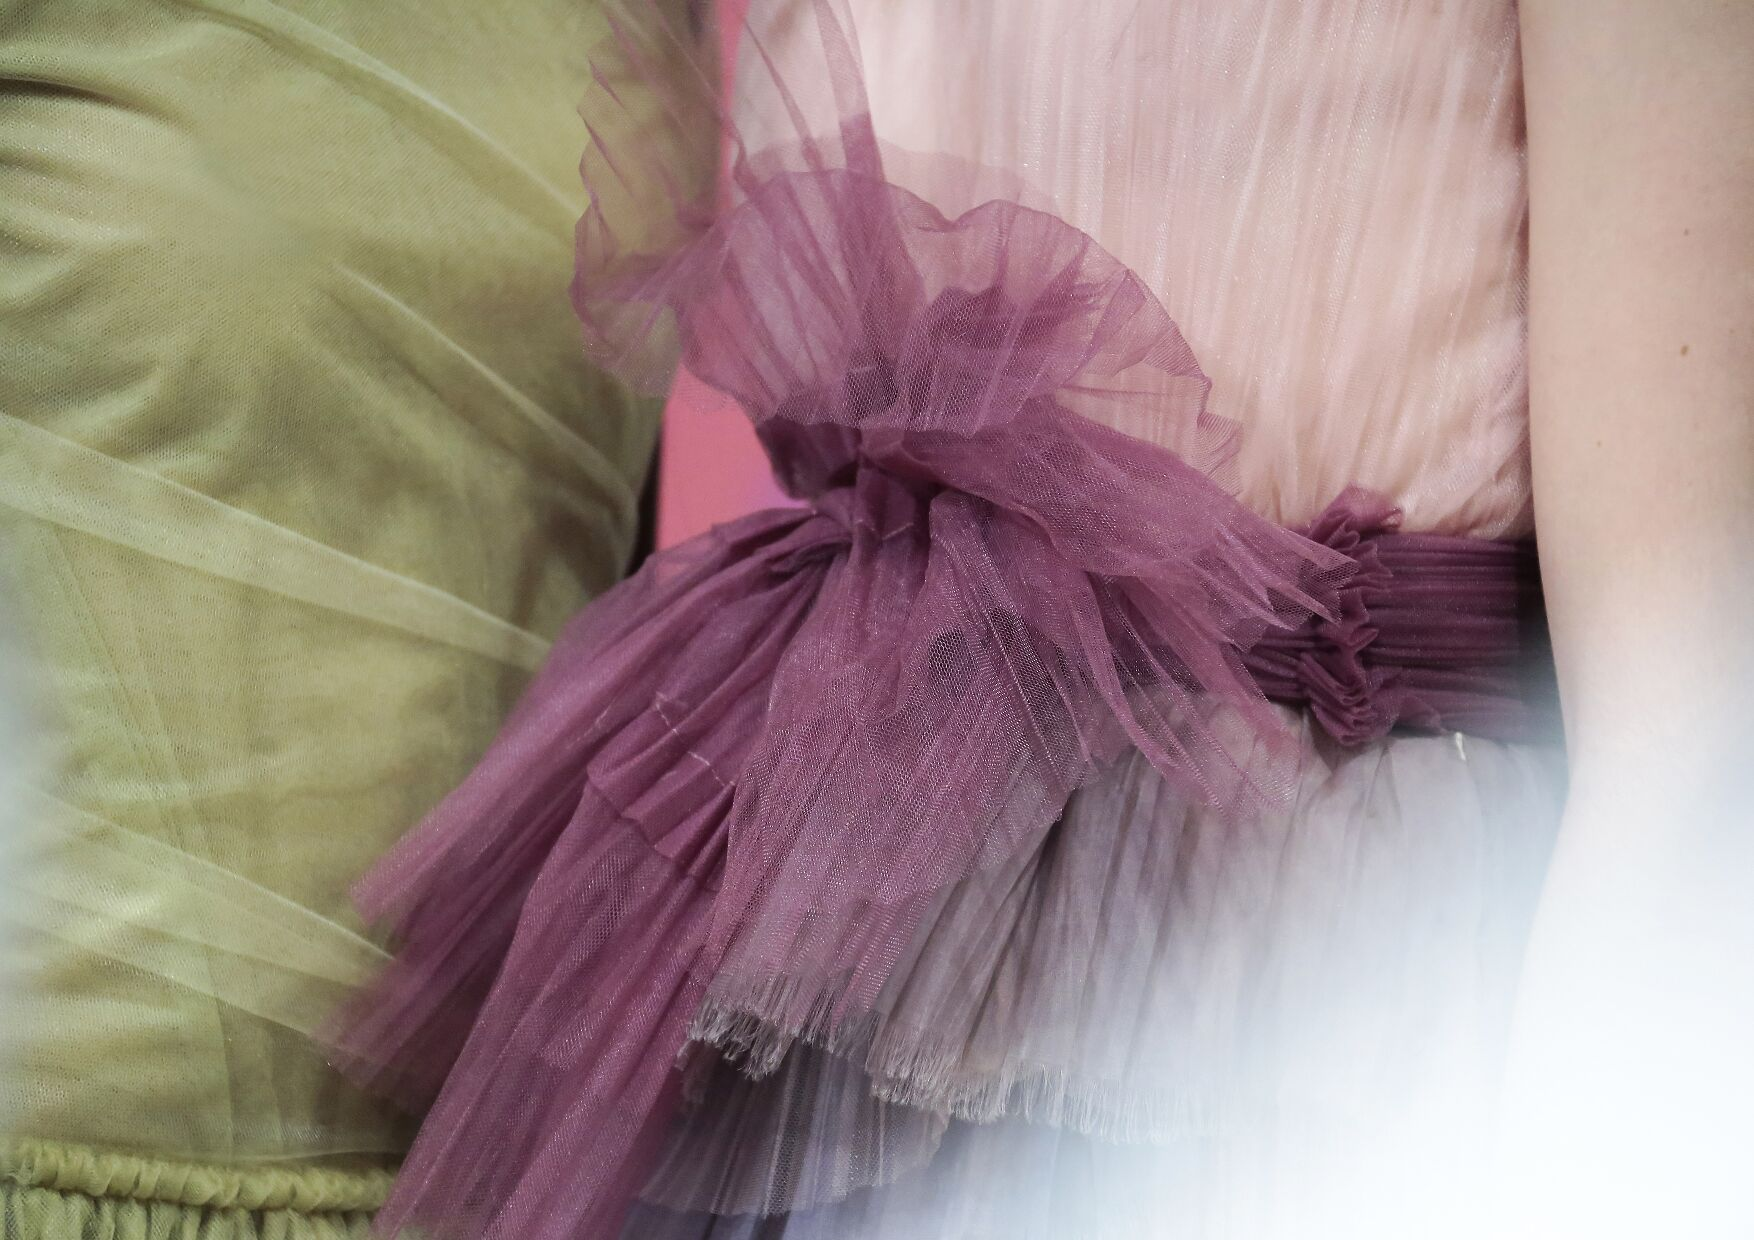 Backstage Burberry Prorsum Dress Detail